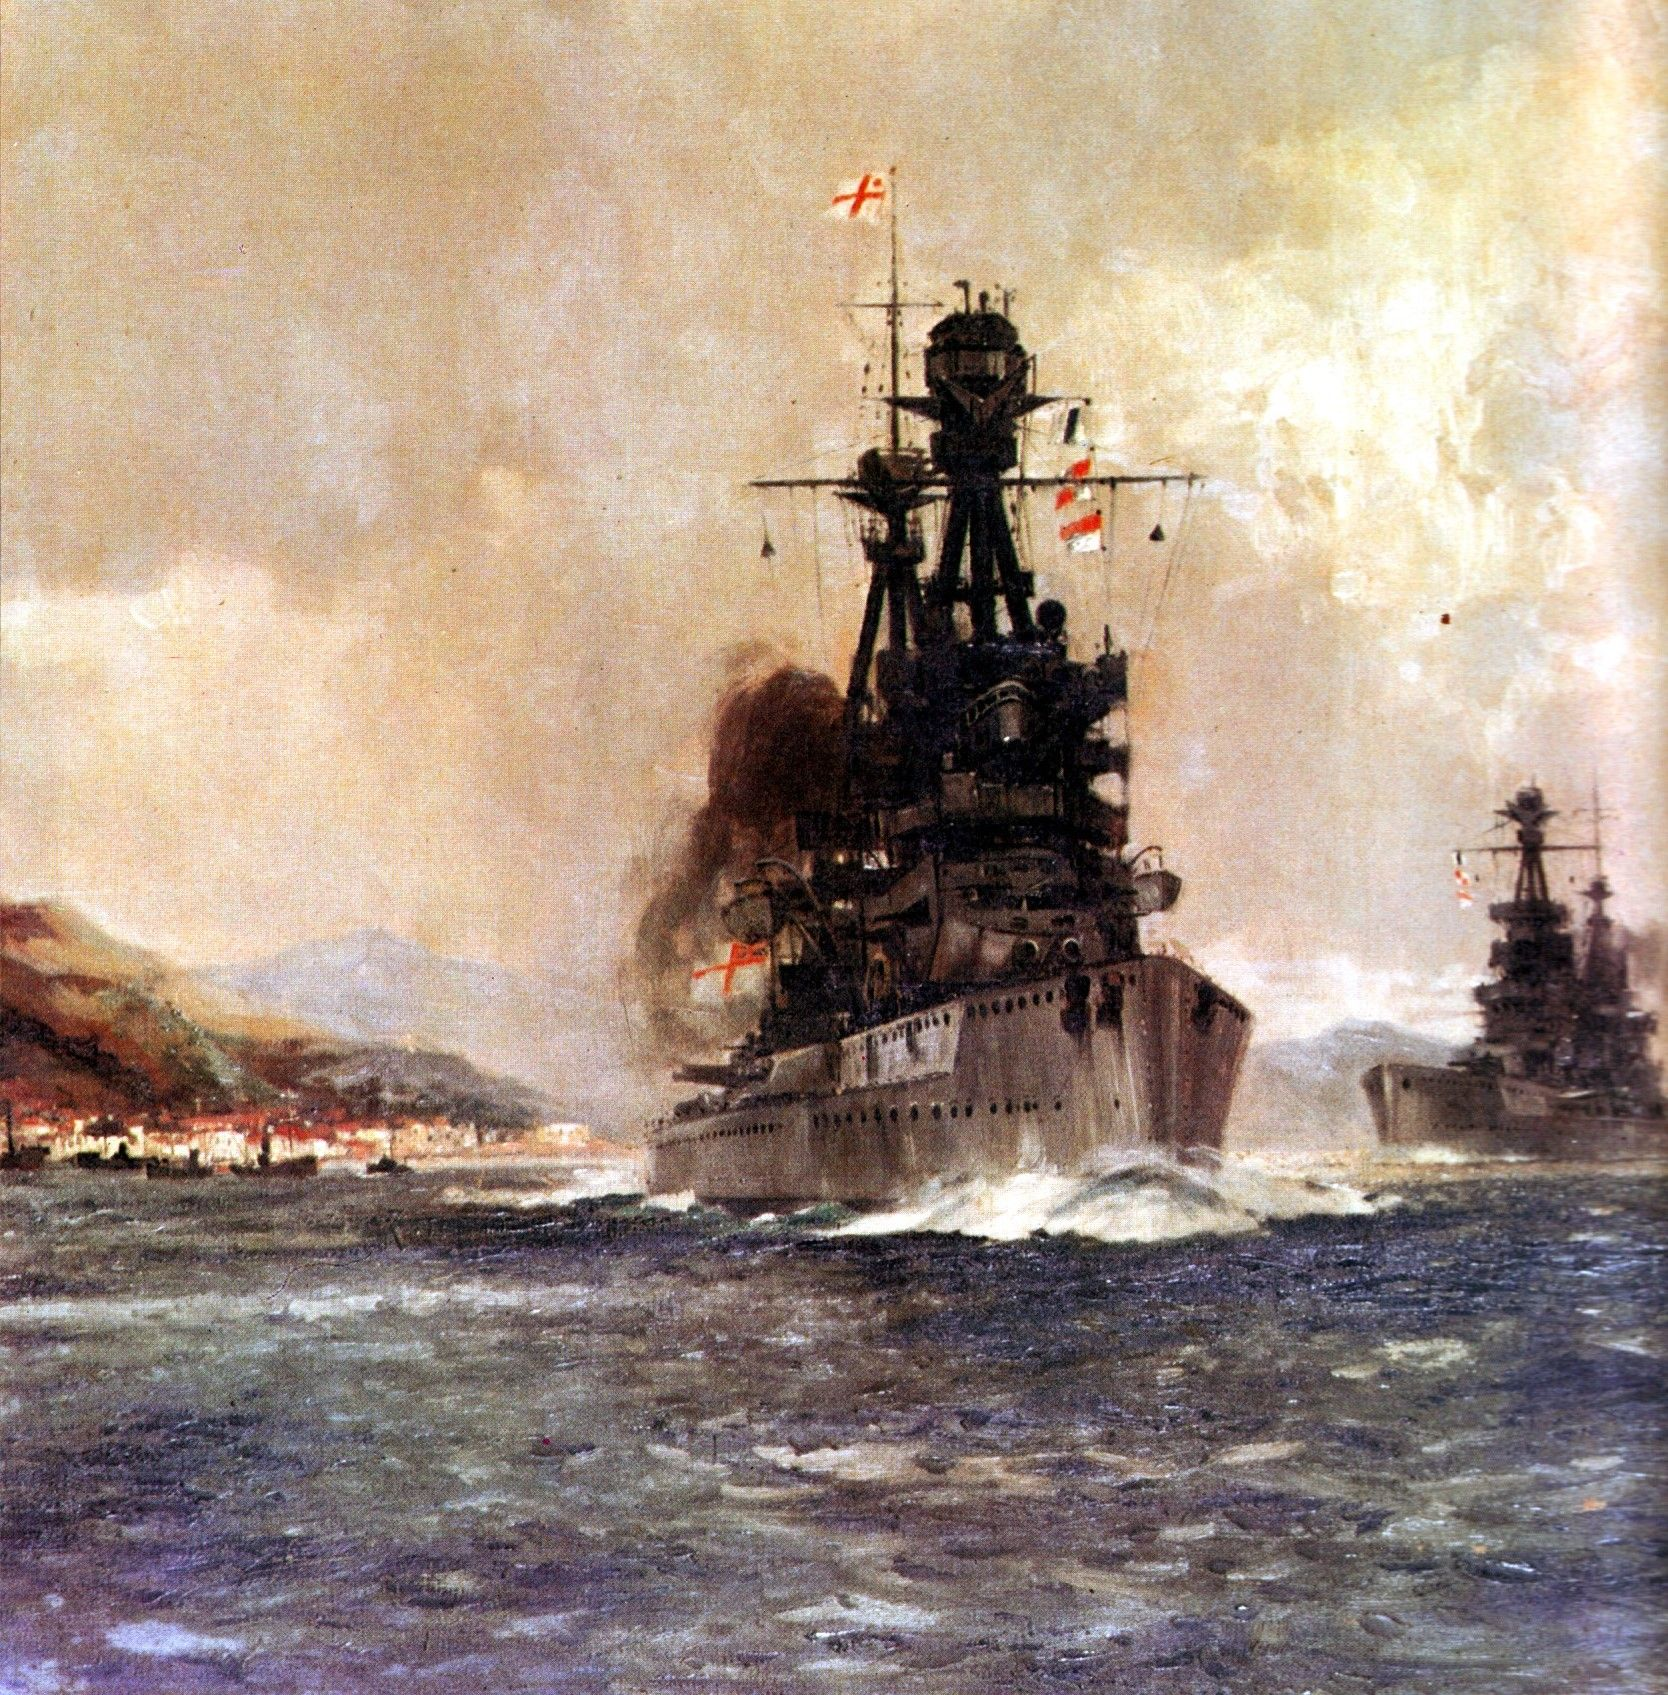 British Battleship HMS Superb. Superb fought at the Battle of Jutland on 31st May 1916 in Vice Admiral Sir Doveton Sturdee's 4th Battle Squadron